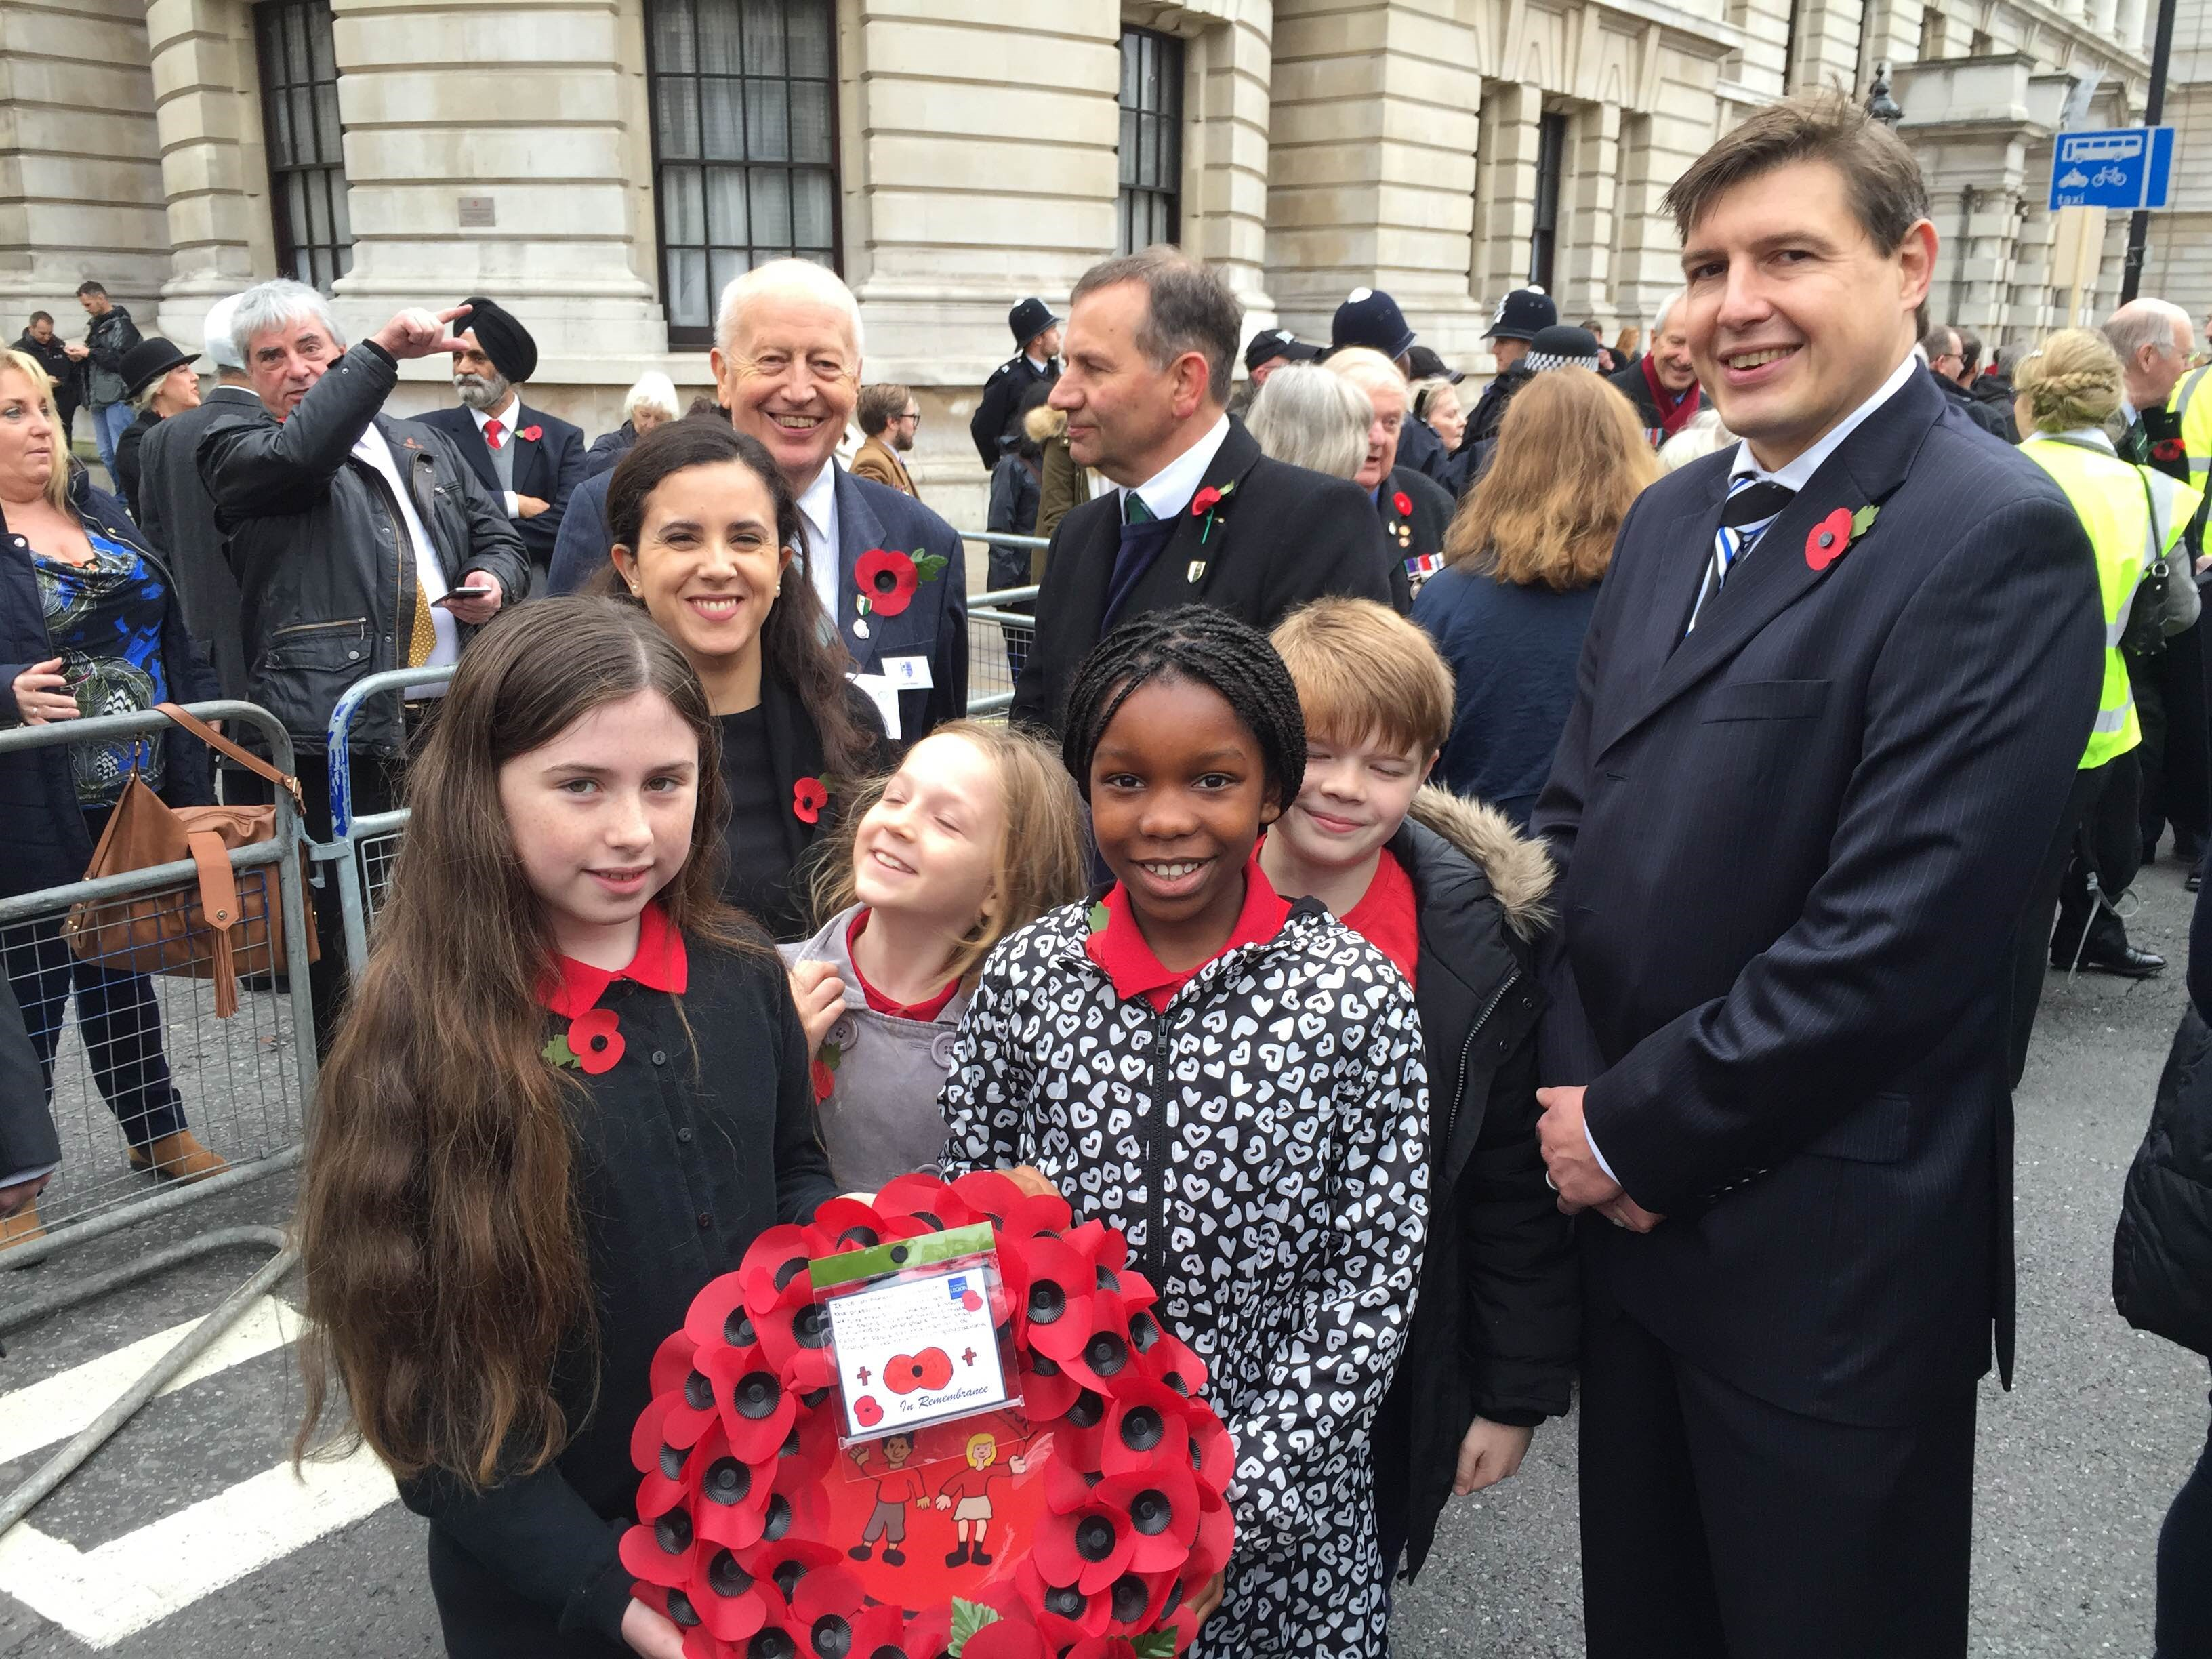 Tufnell Park Primary School join us at the Cenotaph